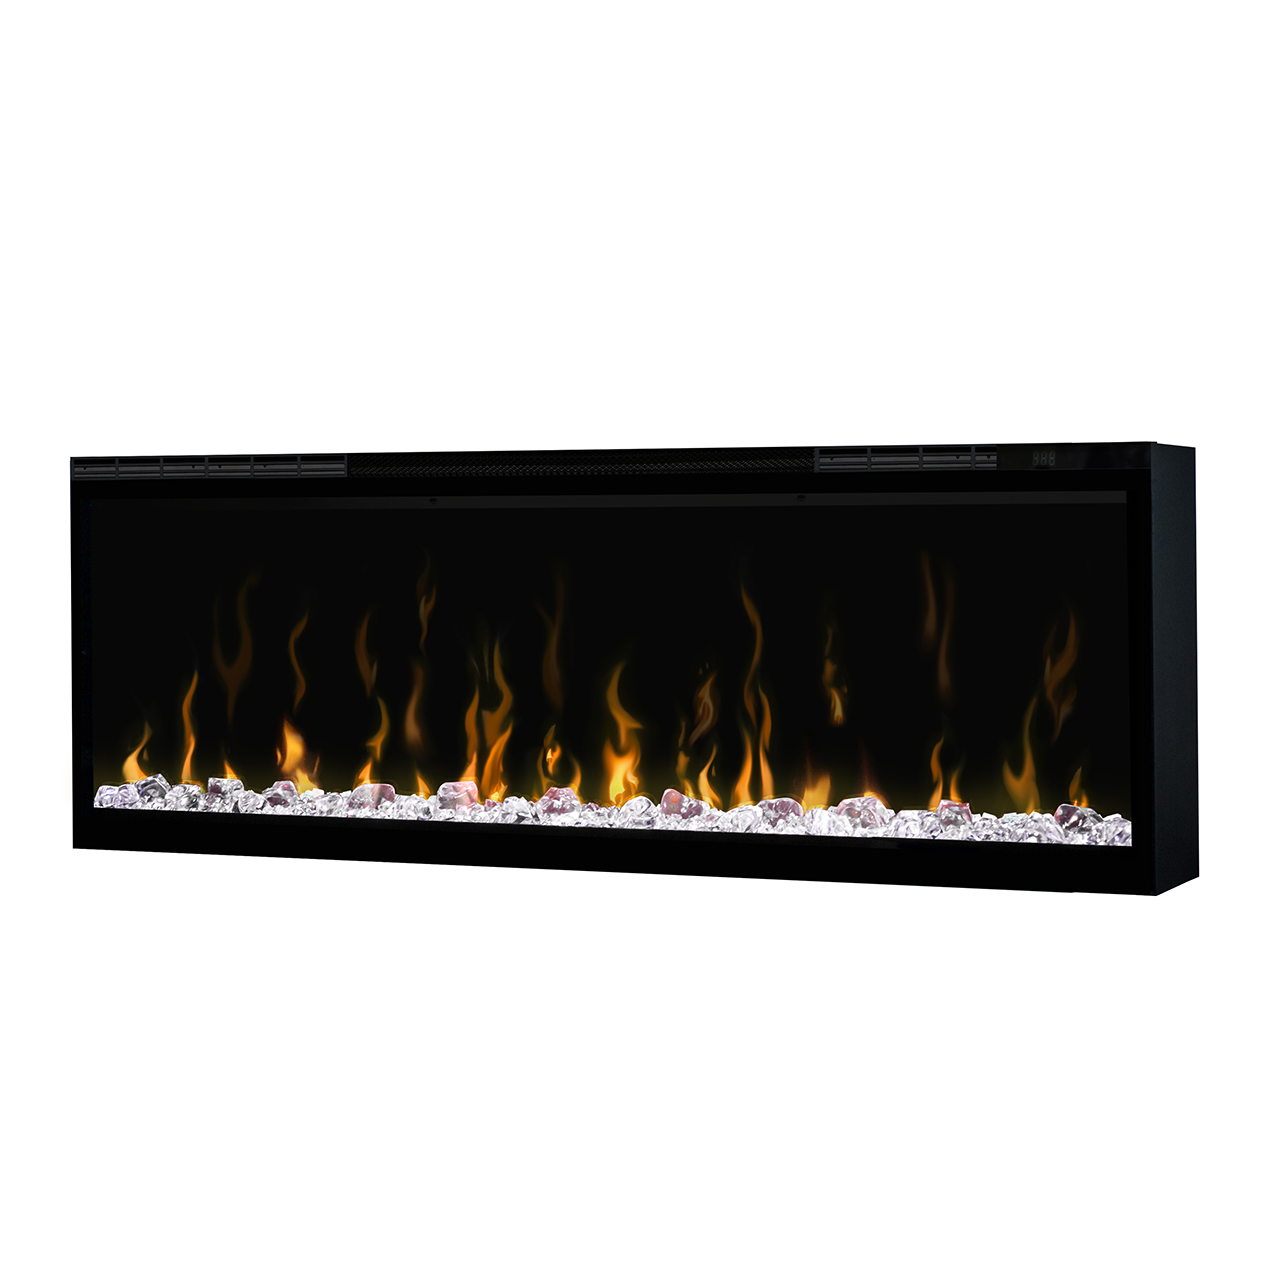 IgniteXL stands apart as more lifelike and visually stunning than any other electric fireplace. With new